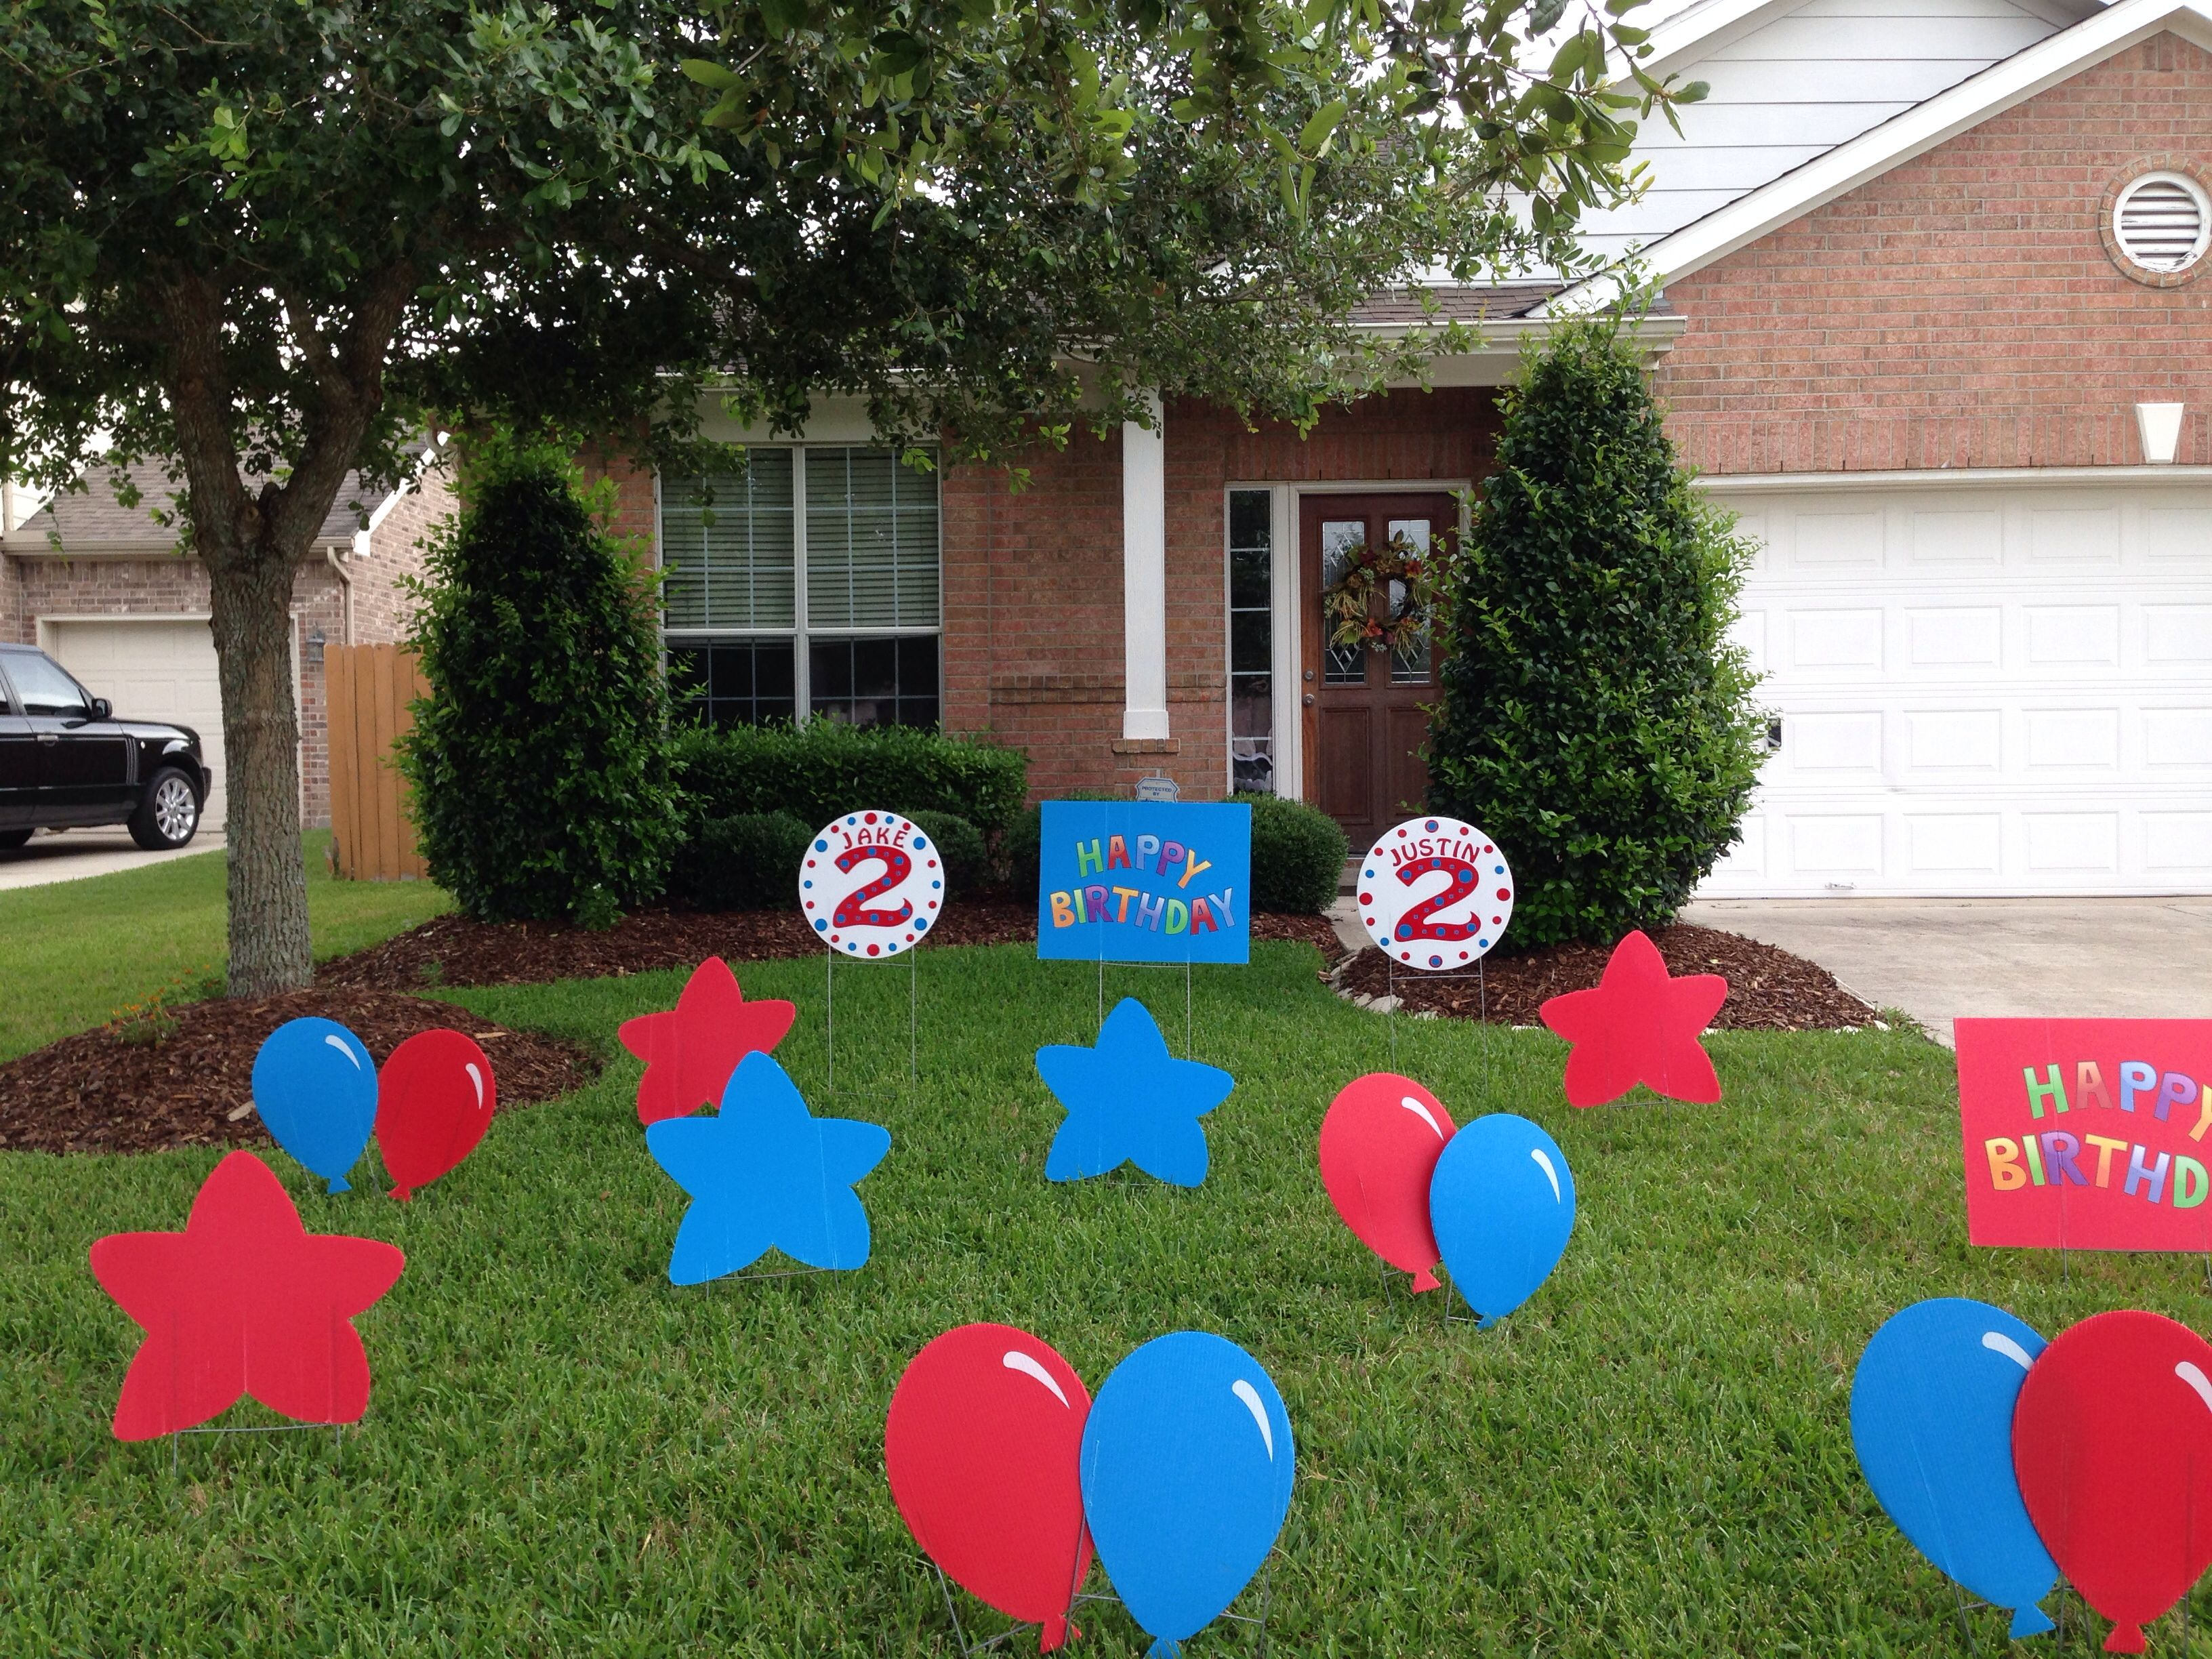 Dr seuss thing 1 thing 2 outdoor birthday decorations for 1 year birthday decoration ideas